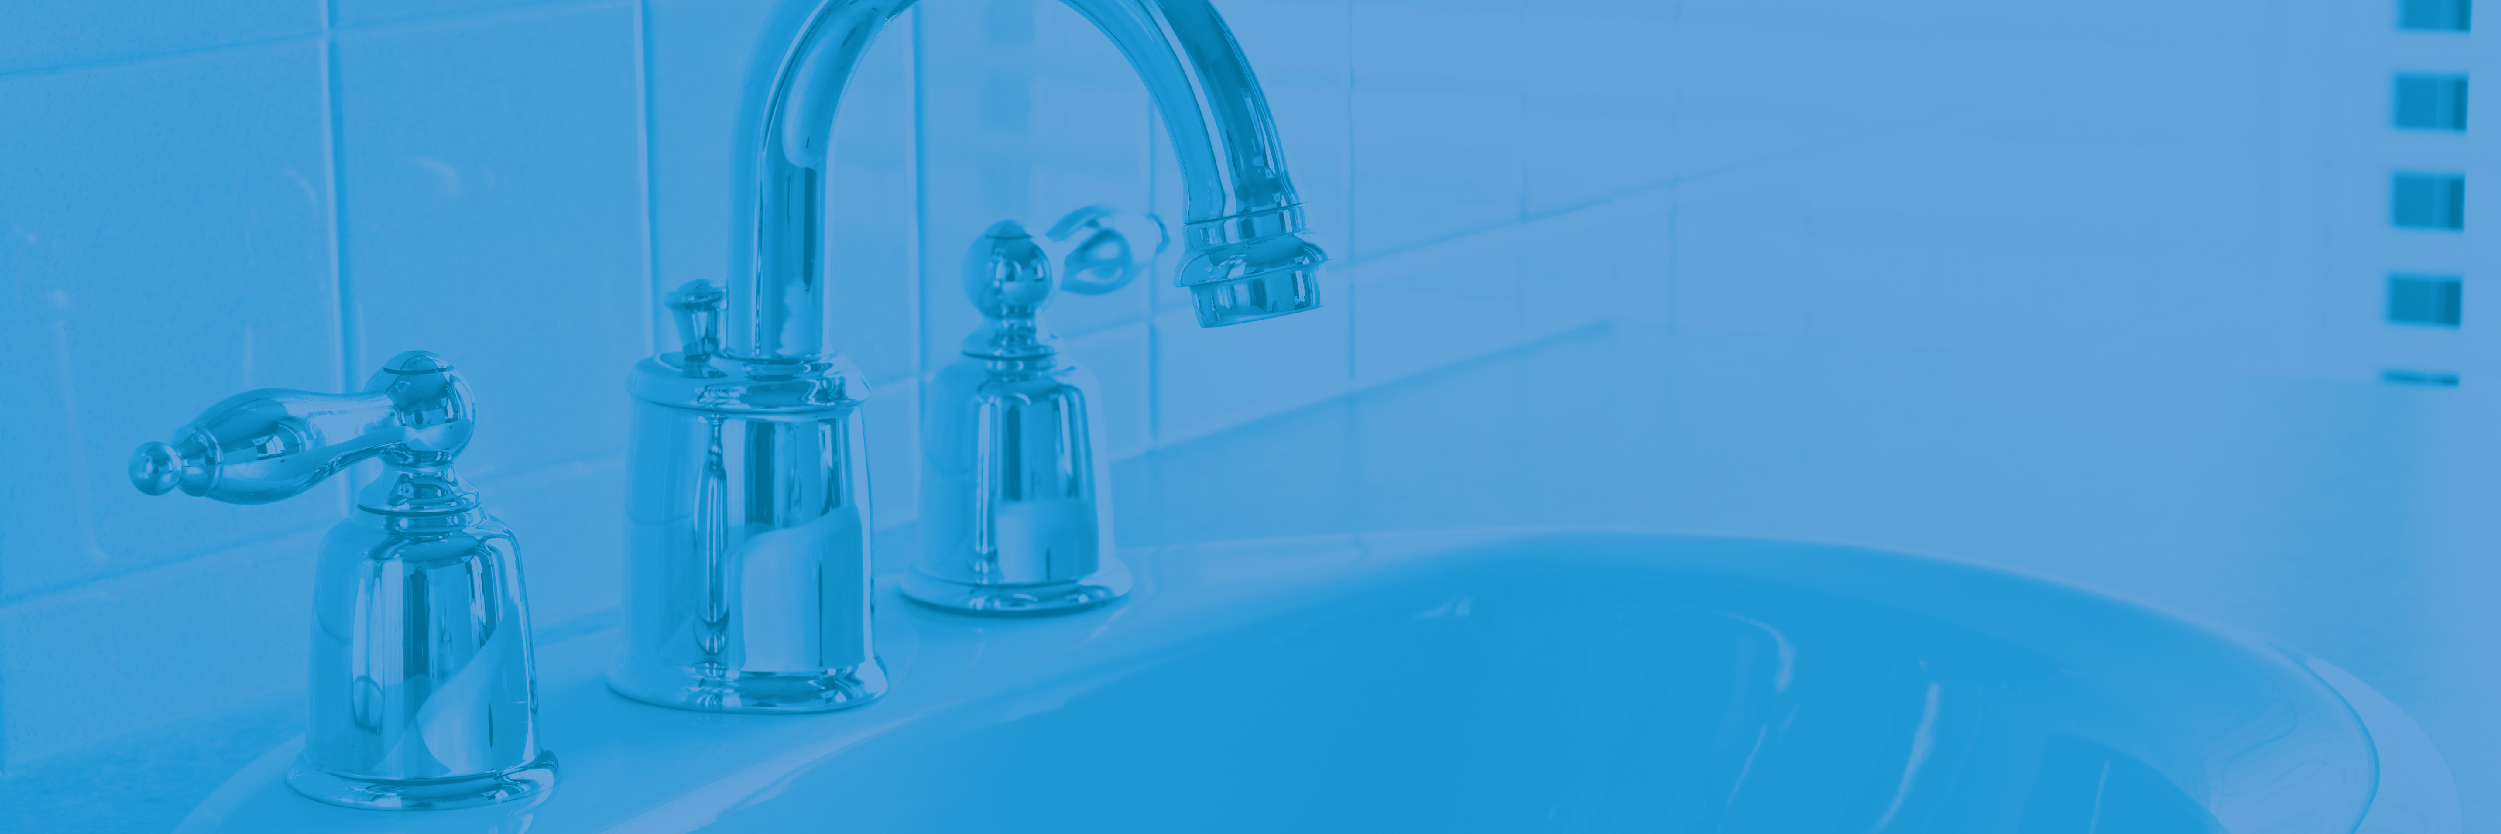 How to clean your kitchen and bathroom faucets super blog for How to clean bathroom faucets